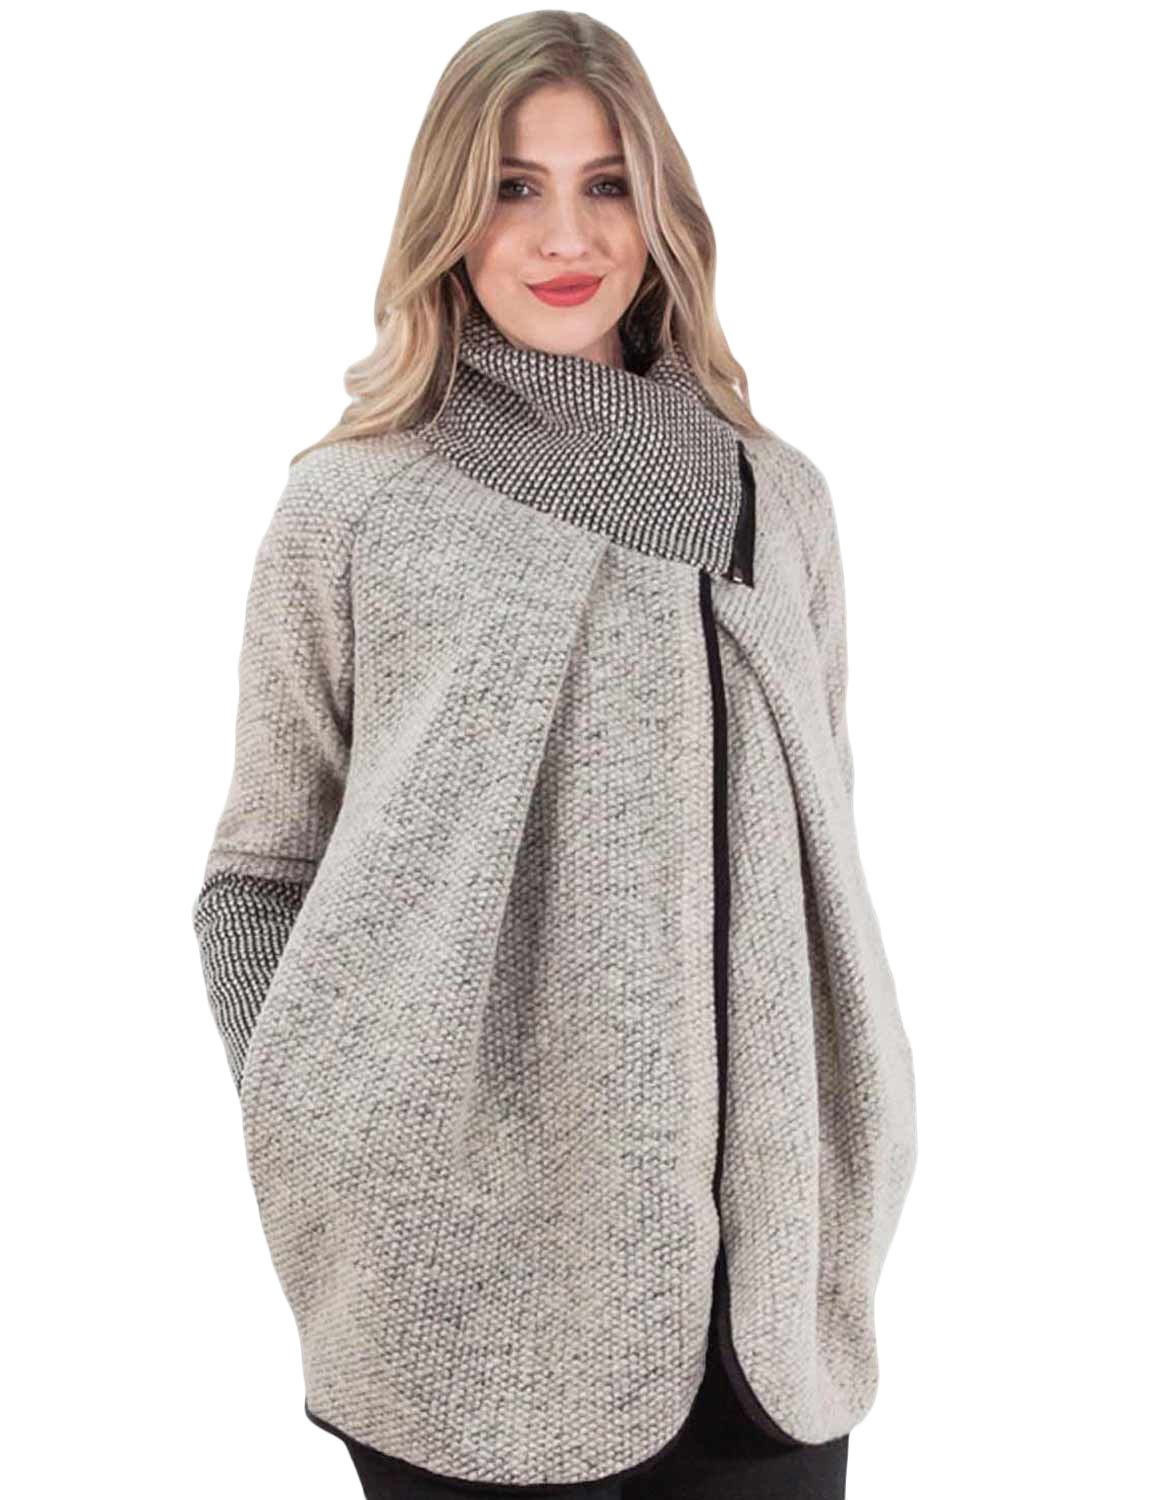 The Aran Sweater Market is the home of Irish Cable knit sweaters and ladies cardigans. From classic Irish knitwear to the latest knitwear trends, the Aran Sweater Market has it all. Order today Direct from the Aran Sweater Market on the Aran Islands.